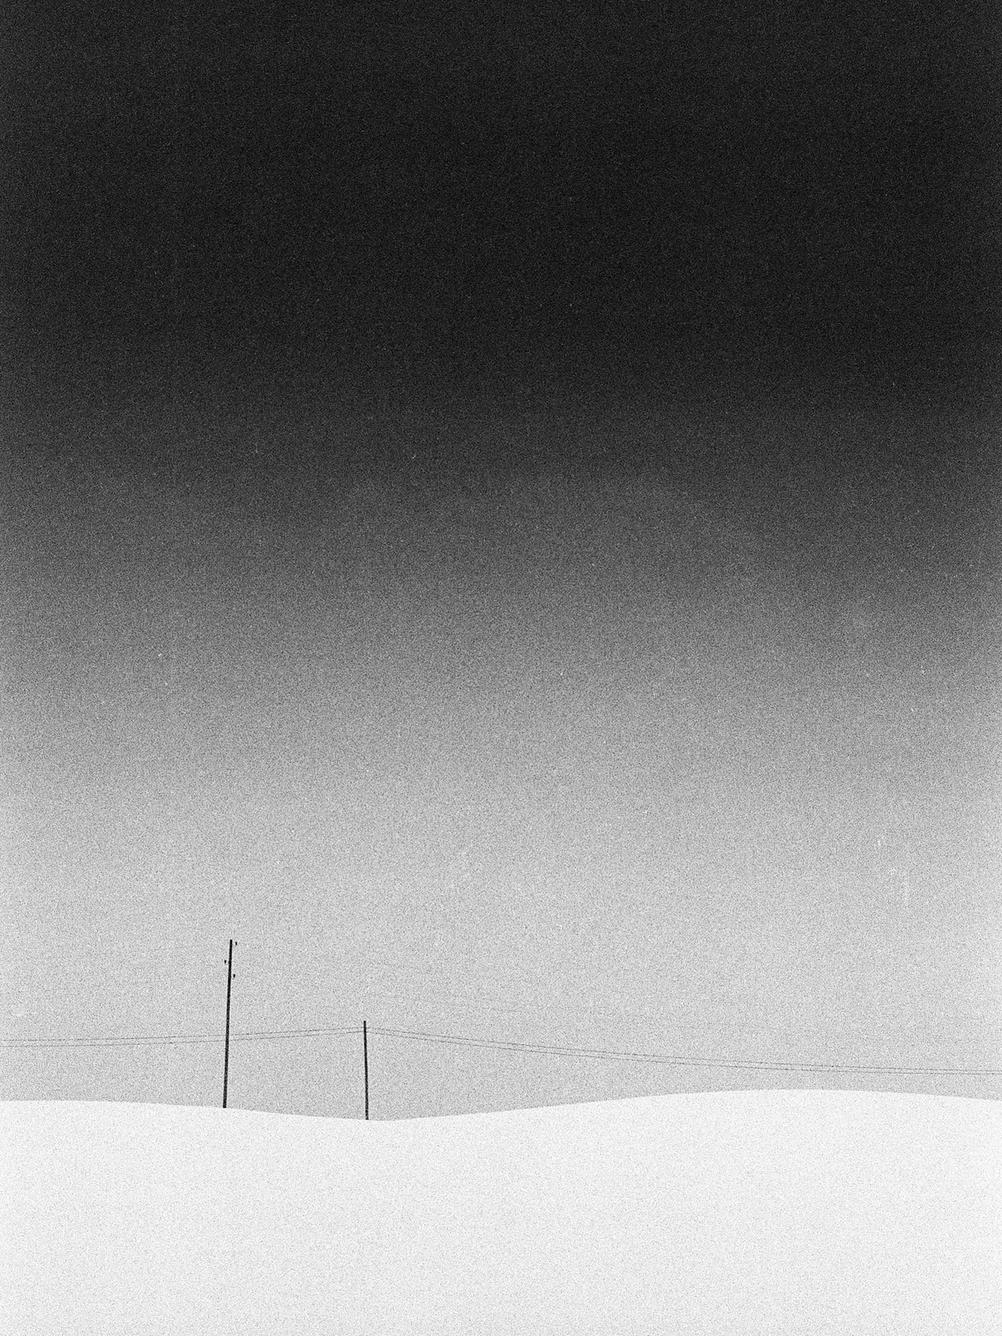 Minimalist photo of two electricity poles in the snow.